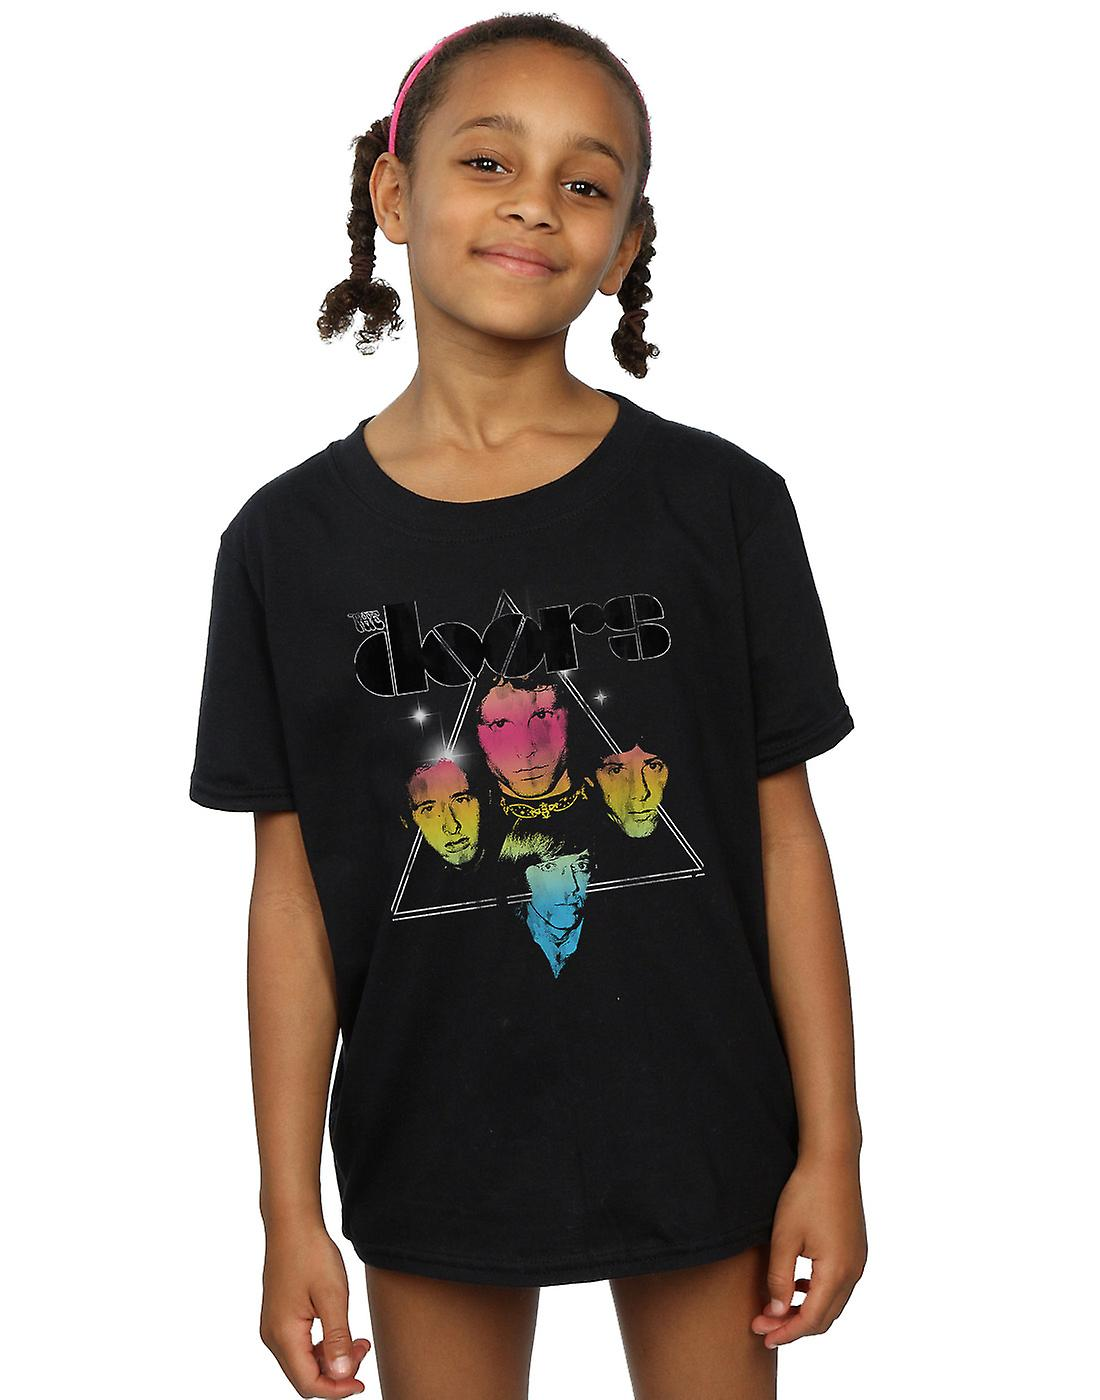 The Doors Girls Triangle Faces T-Shirt